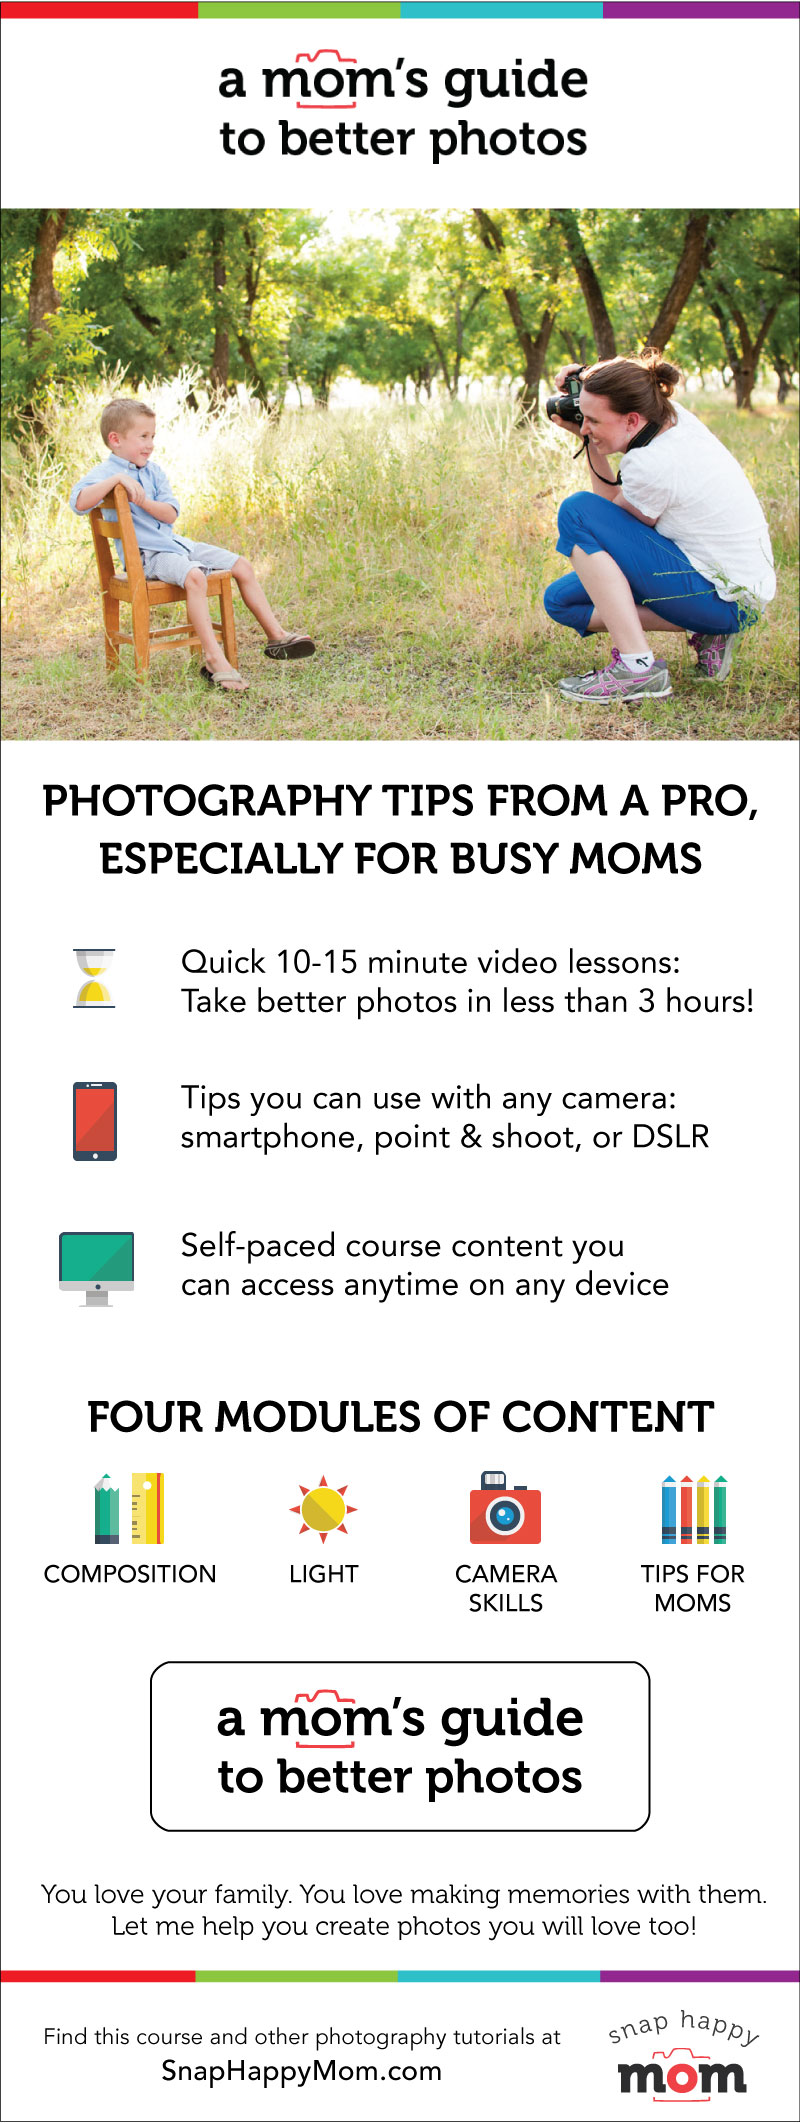 Mom's Guide To Better Photos - a course by SnapHappyMom.com